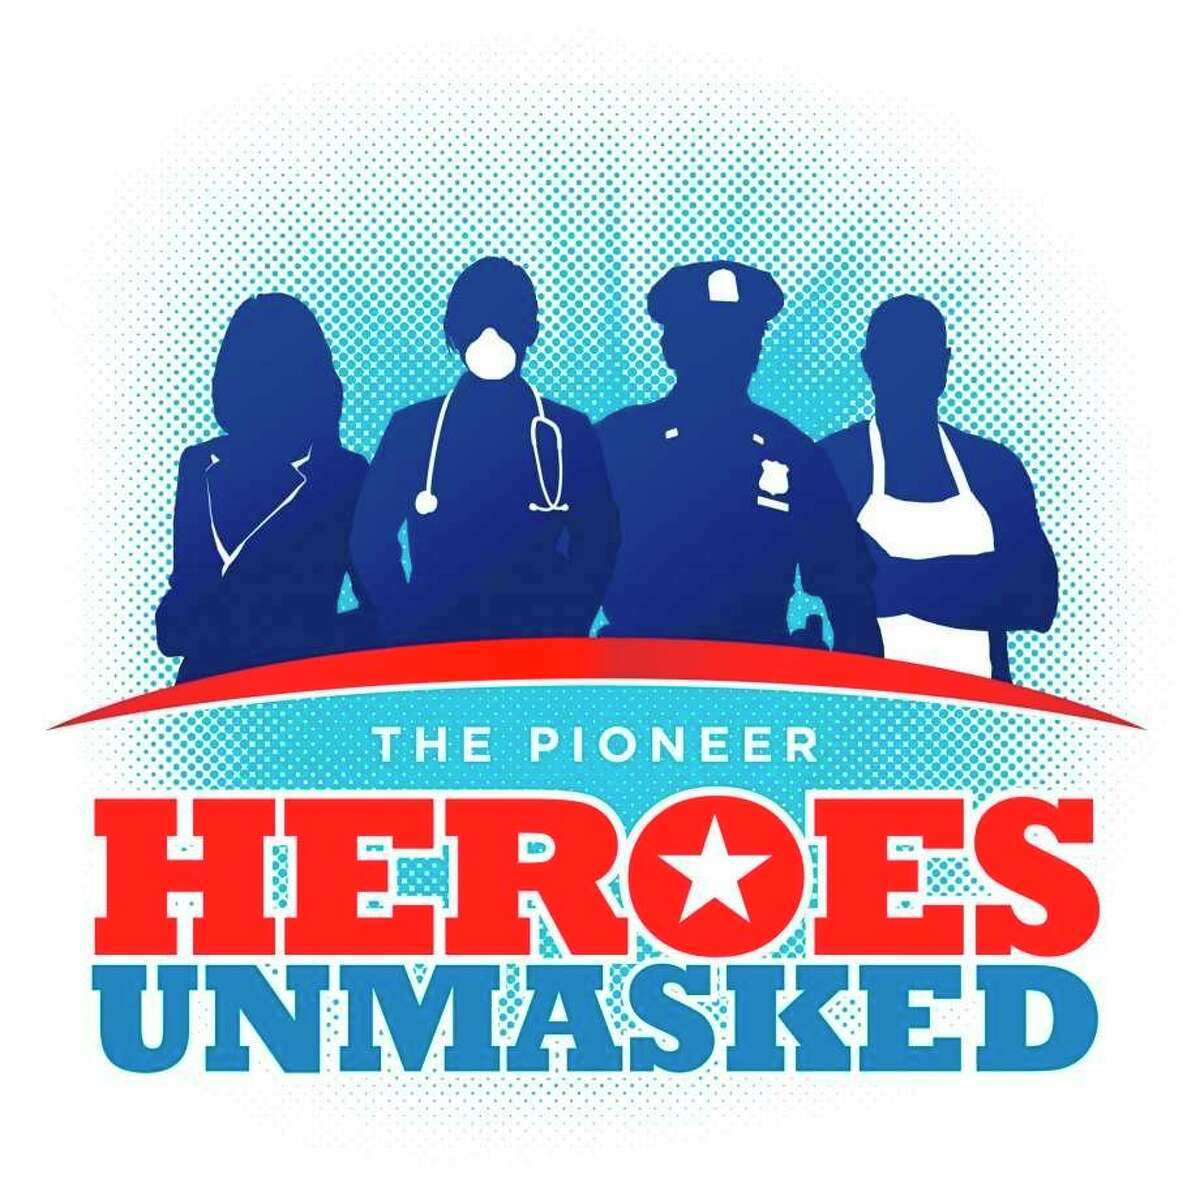 """During this unprecedented time, with the community taking unusual steps to mitigate the spread of the coronavirus, many are going above and beyond to help their friends and neighbors. In a series called """"Heroes Unmasked"""" The Pioneer will be featuring local people, nominated by their peers, who are making a difference in their community."""